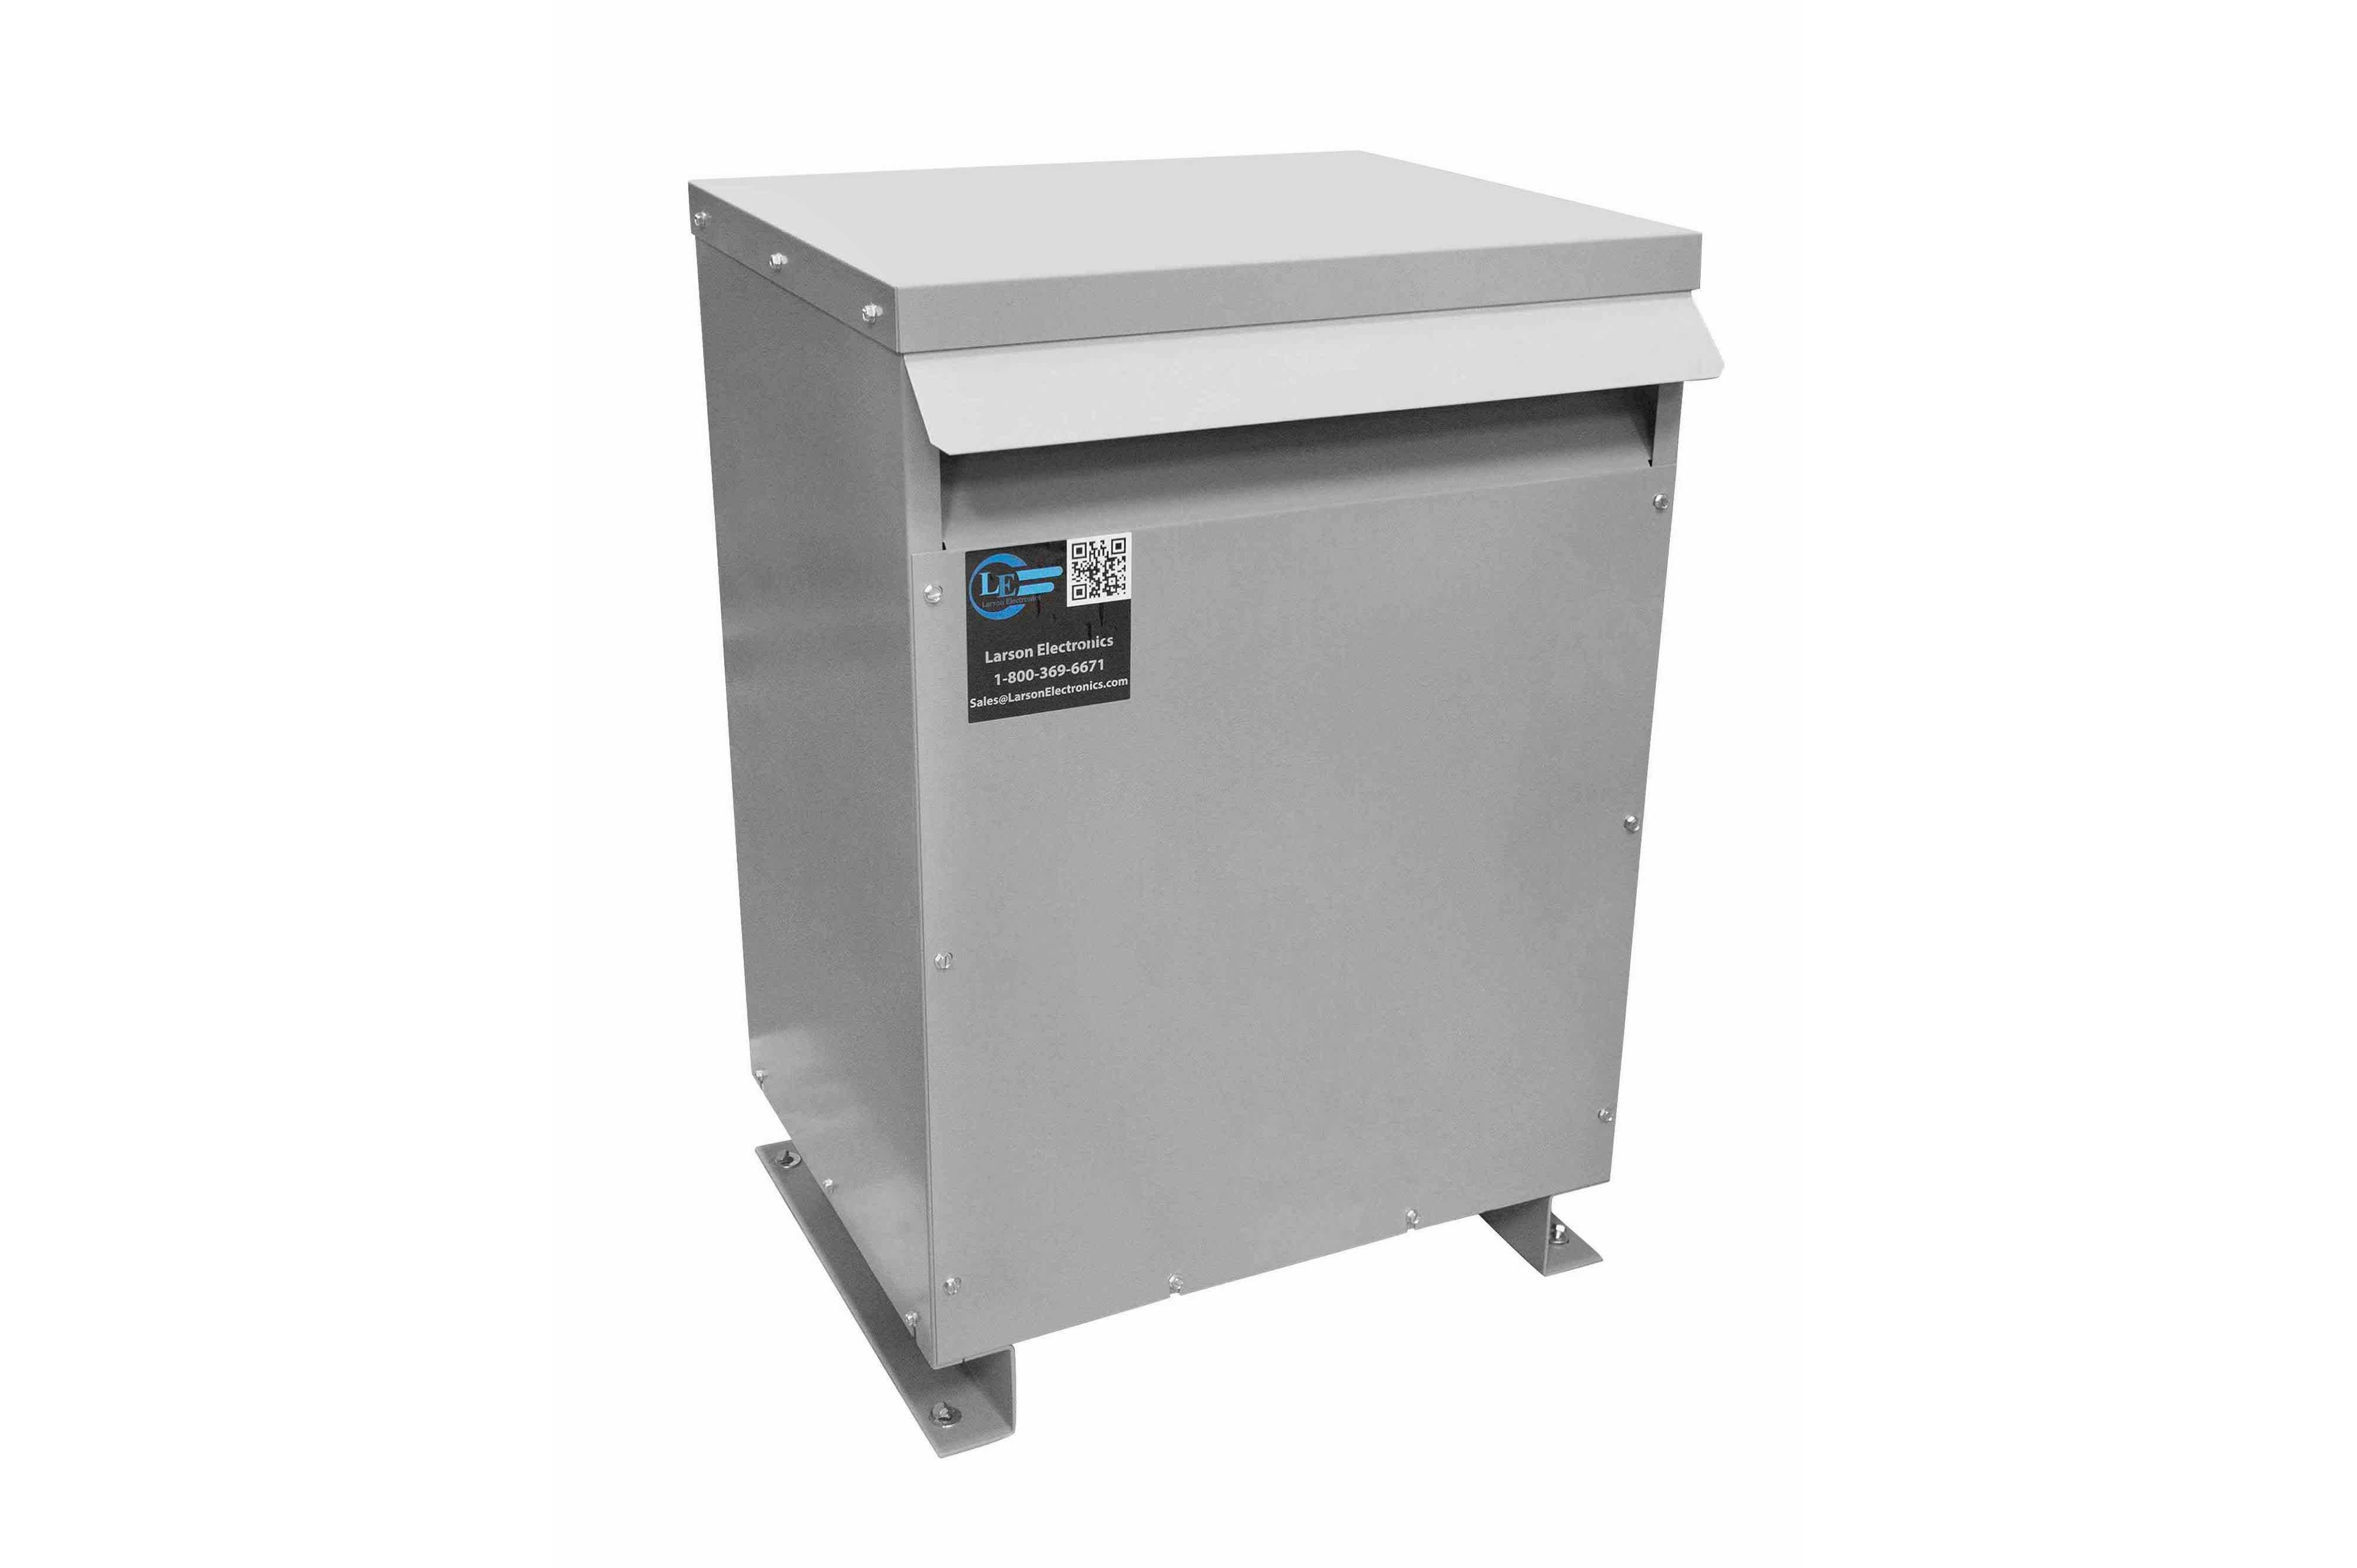 11 kVA 3PH Isolation Transformer, 600V Wye Primary, 208Y/120 Wye-N Secondary, N3R, Ventilated, 60 Hz